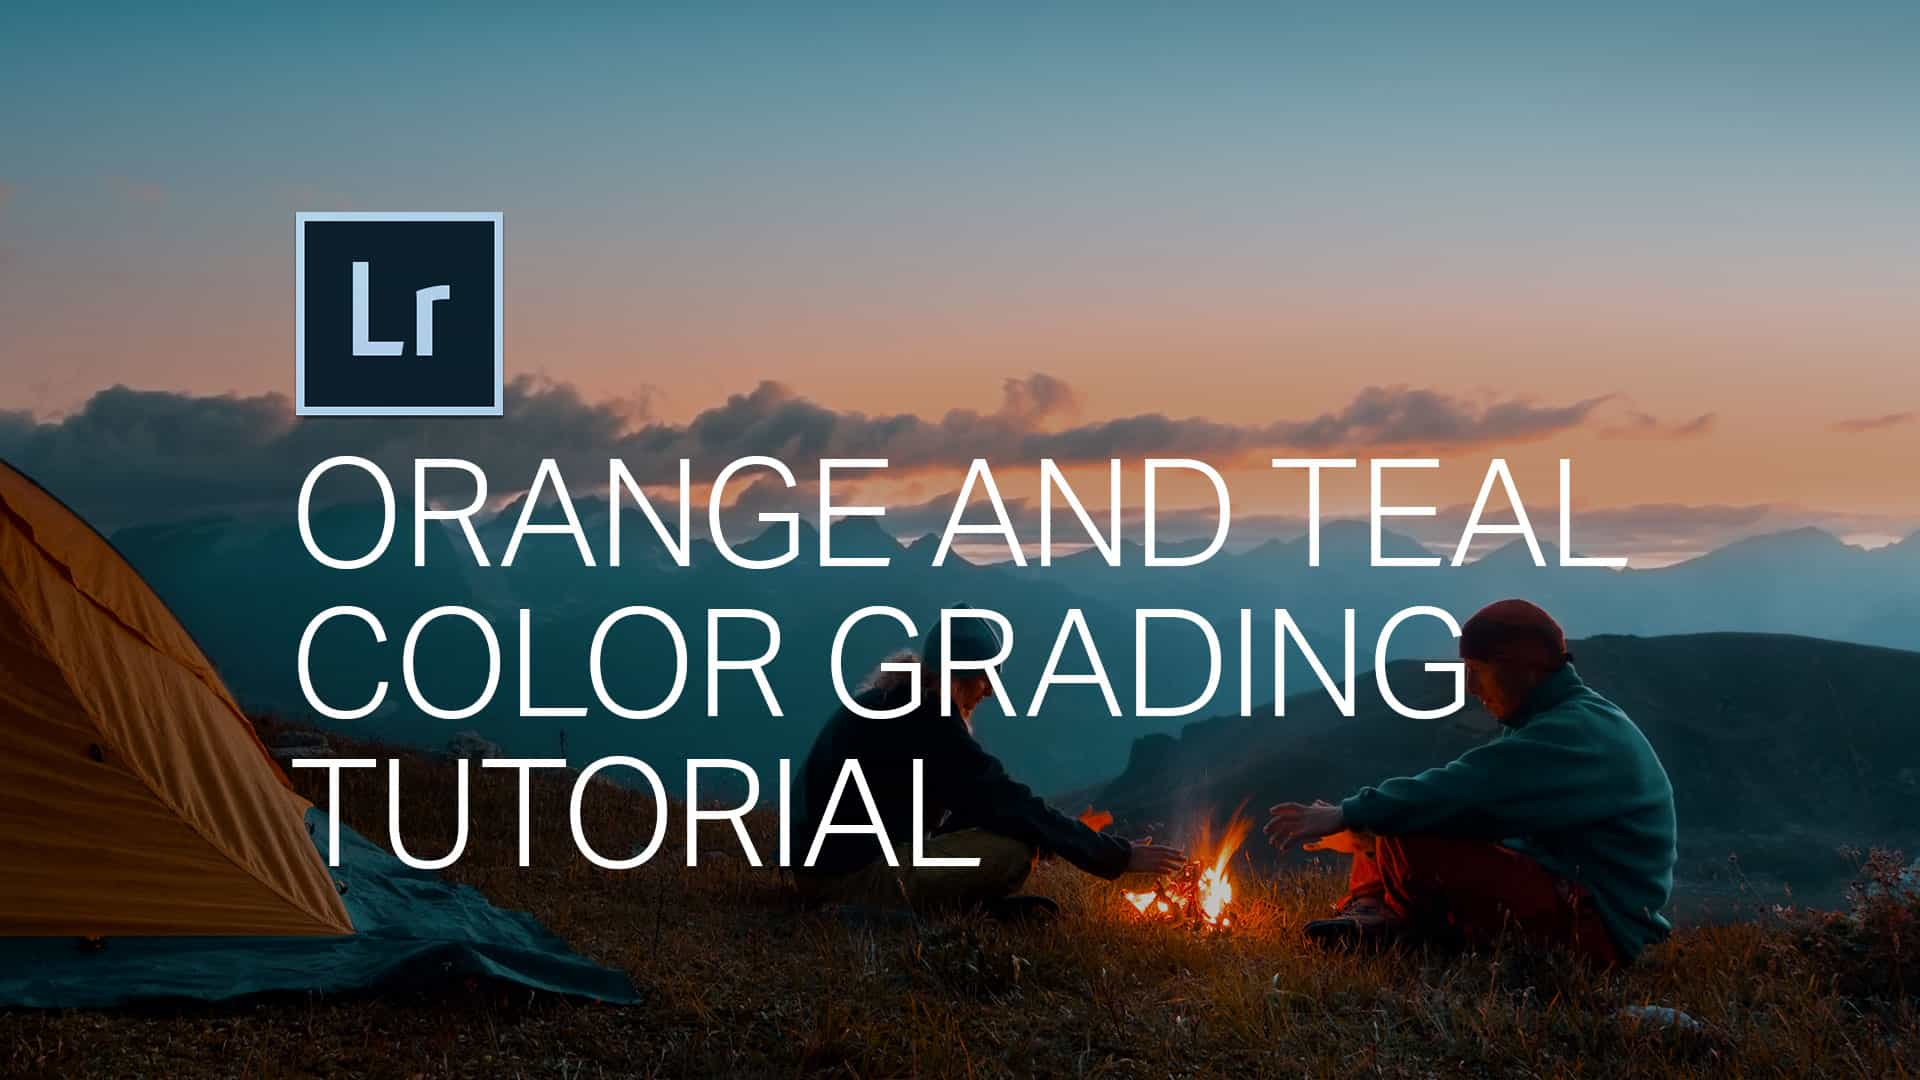 Orange and Teal Color Grading